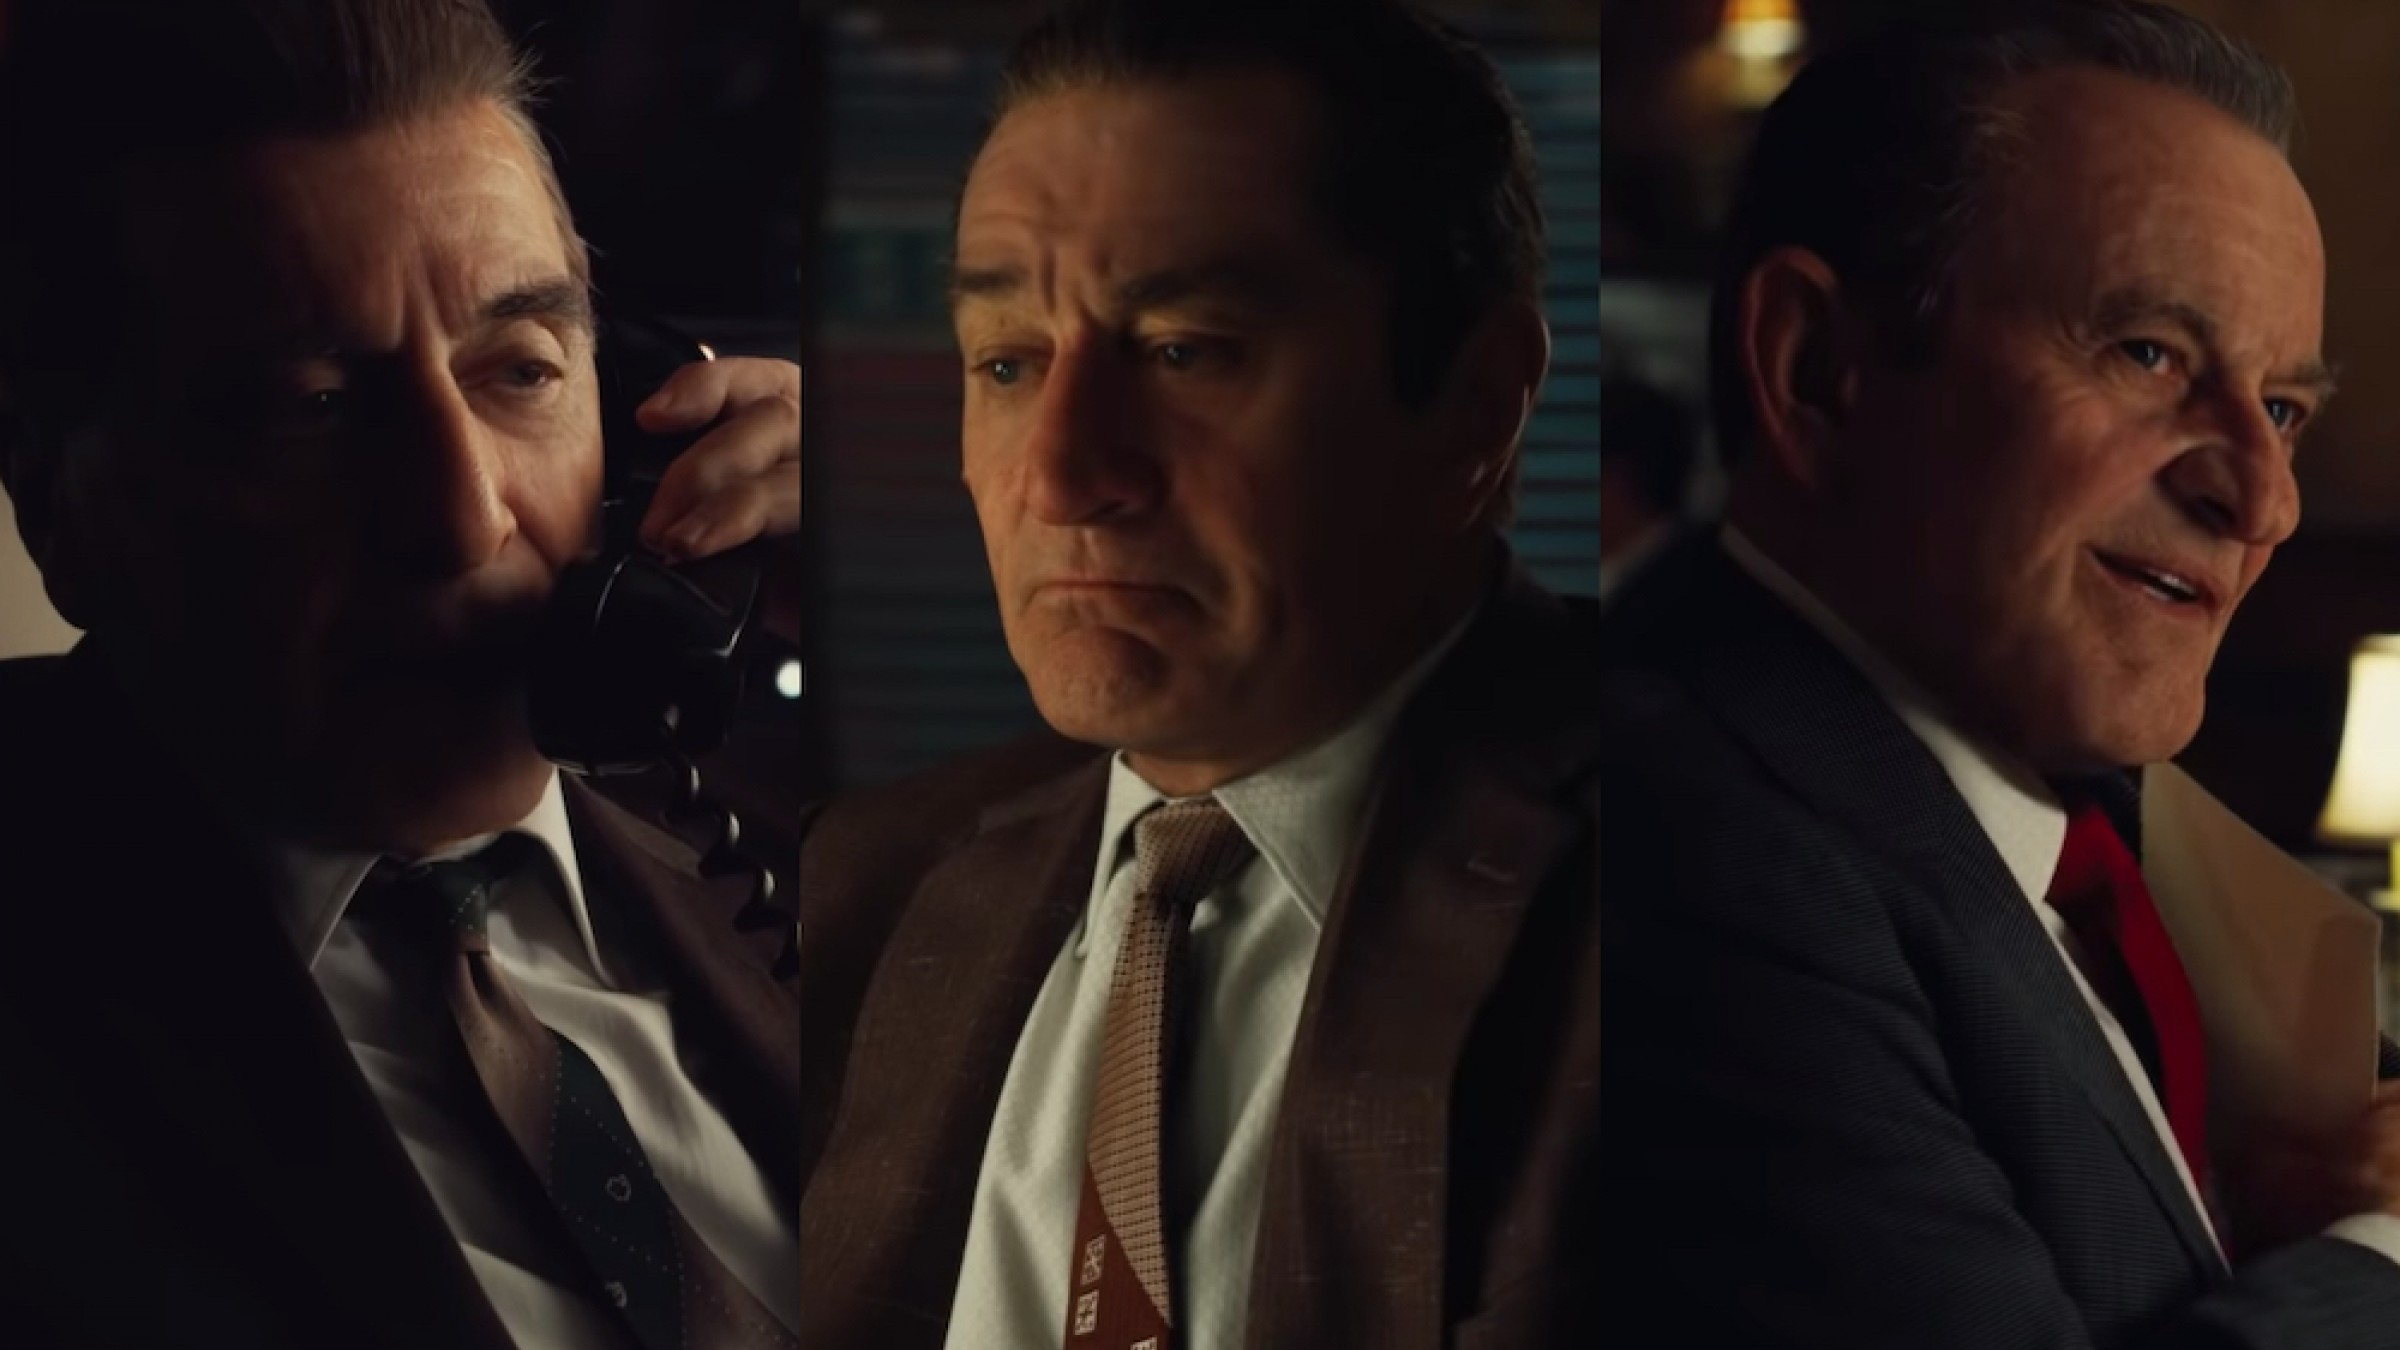 New 'The Irishman' Trailer Makes Scorsese's Netflix Movie an Event